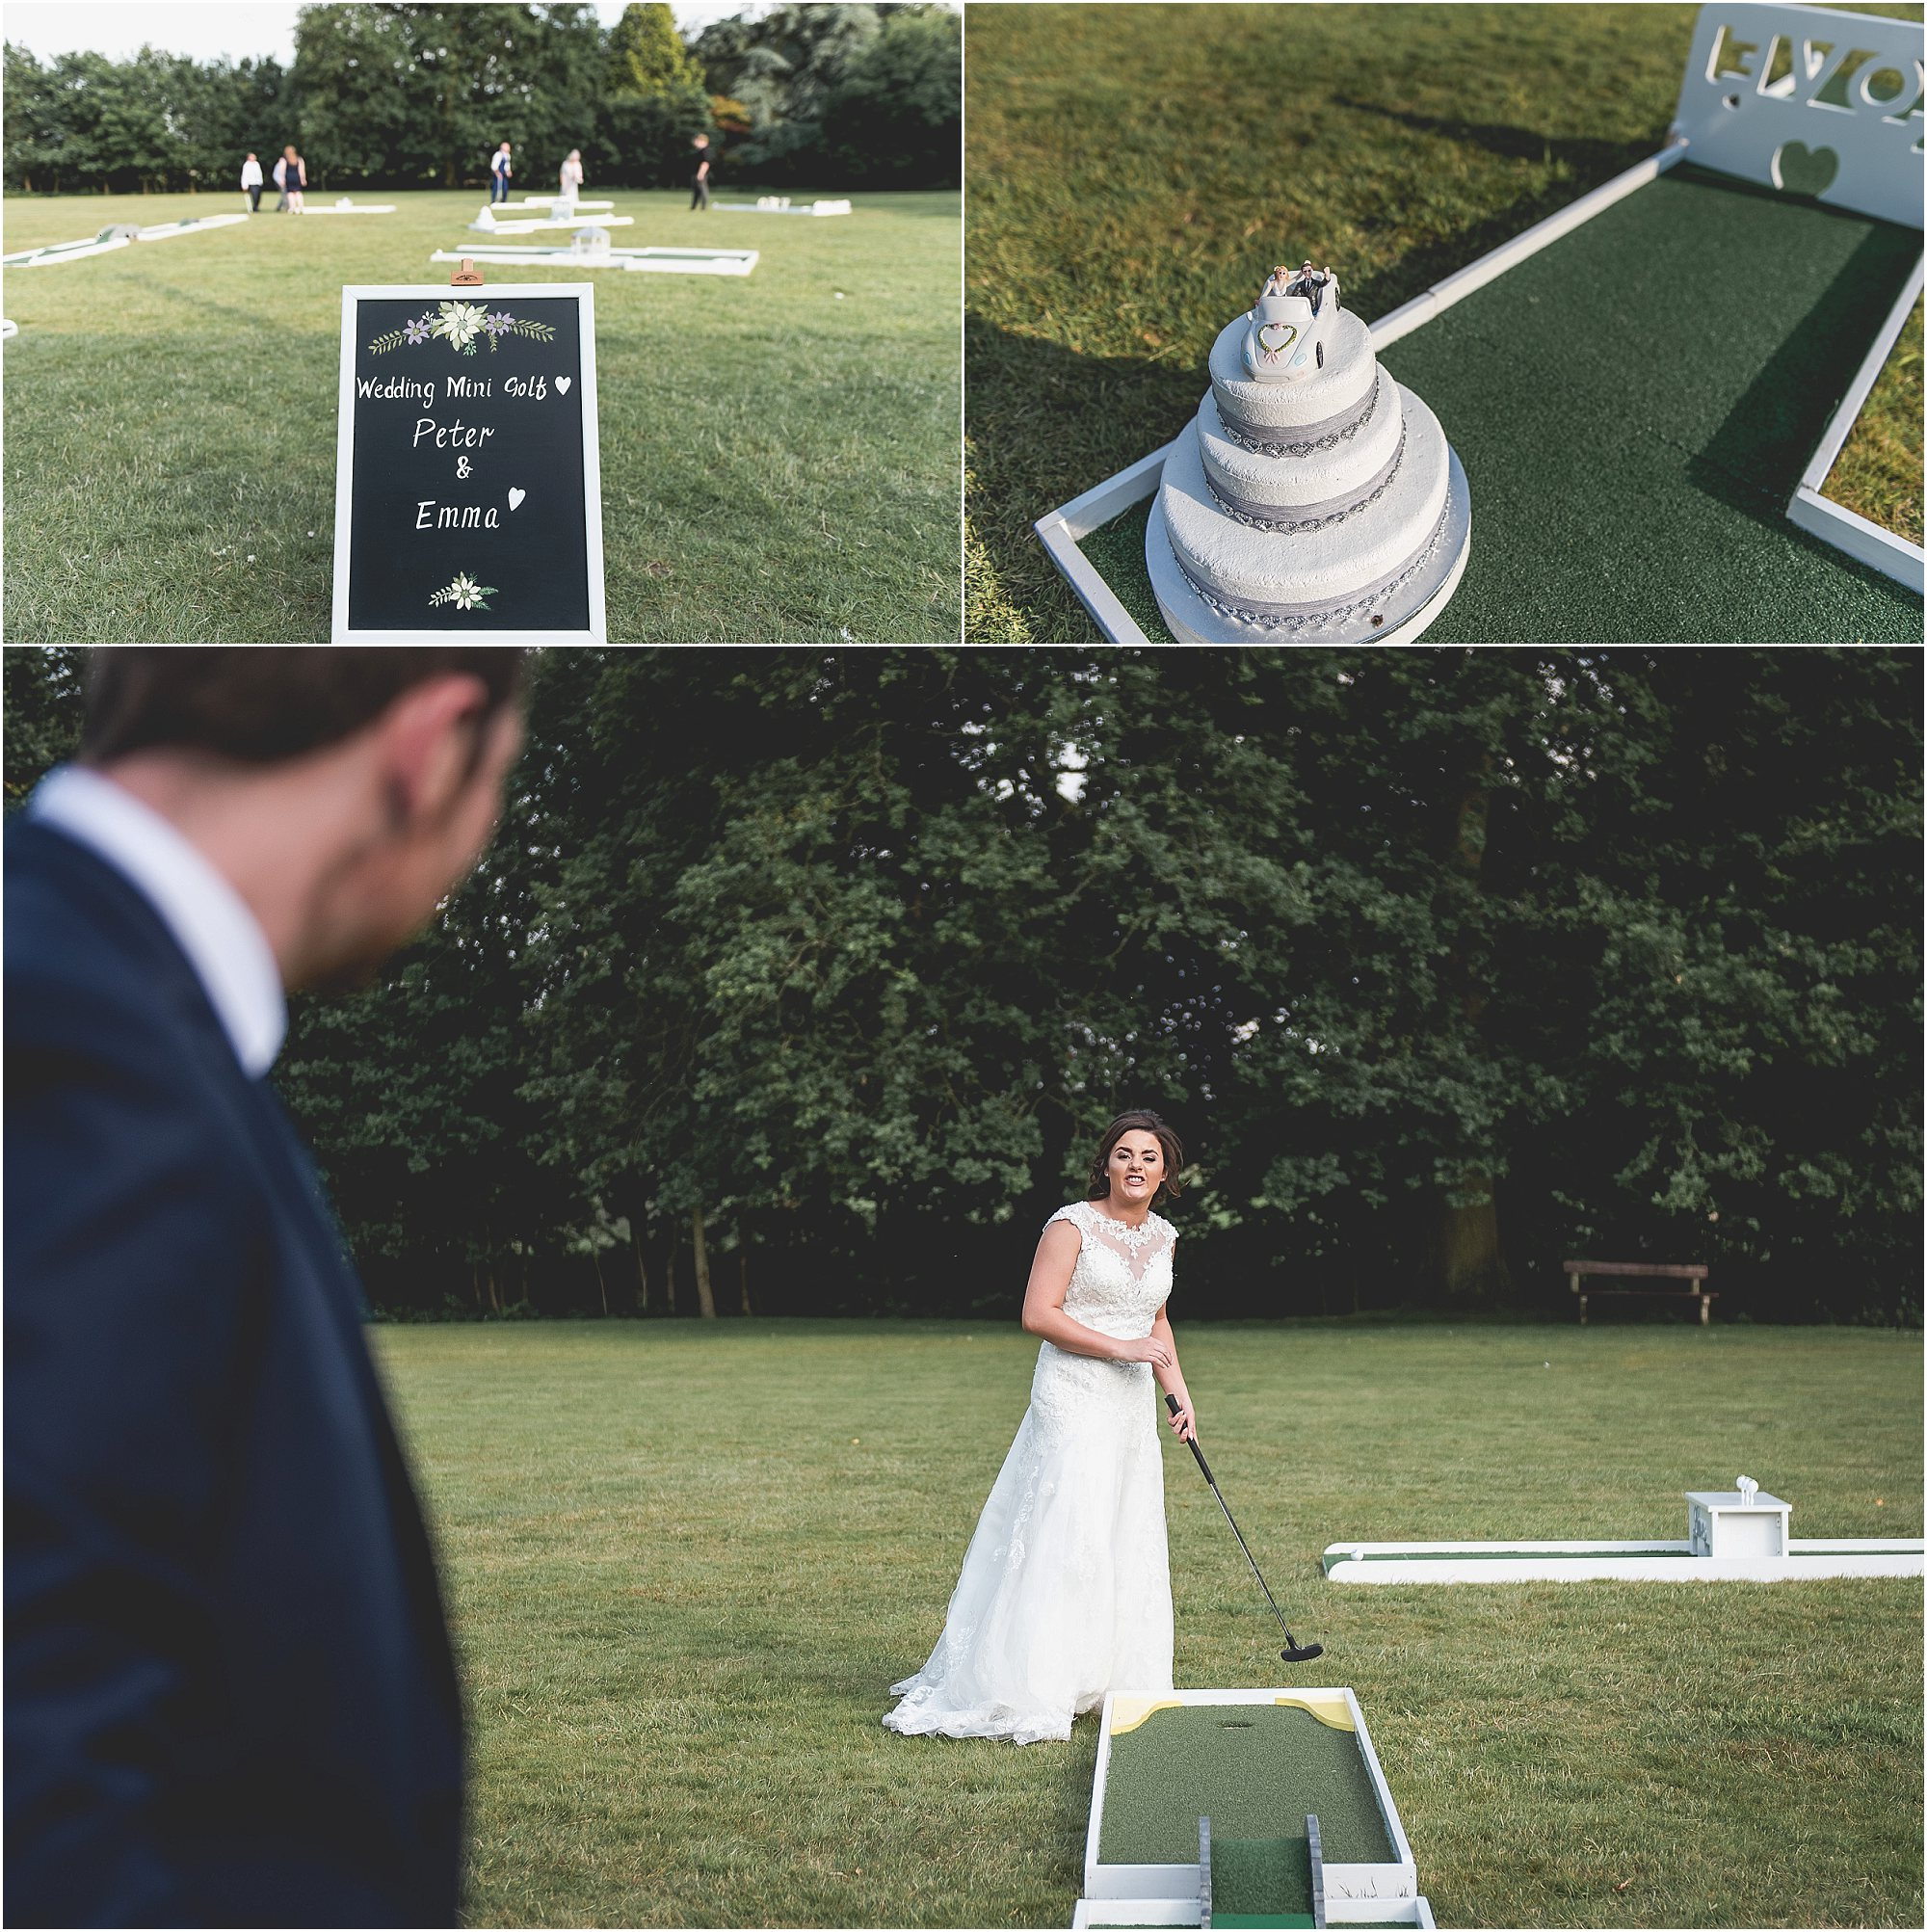 Bride & groom playing mini golf on wedding day